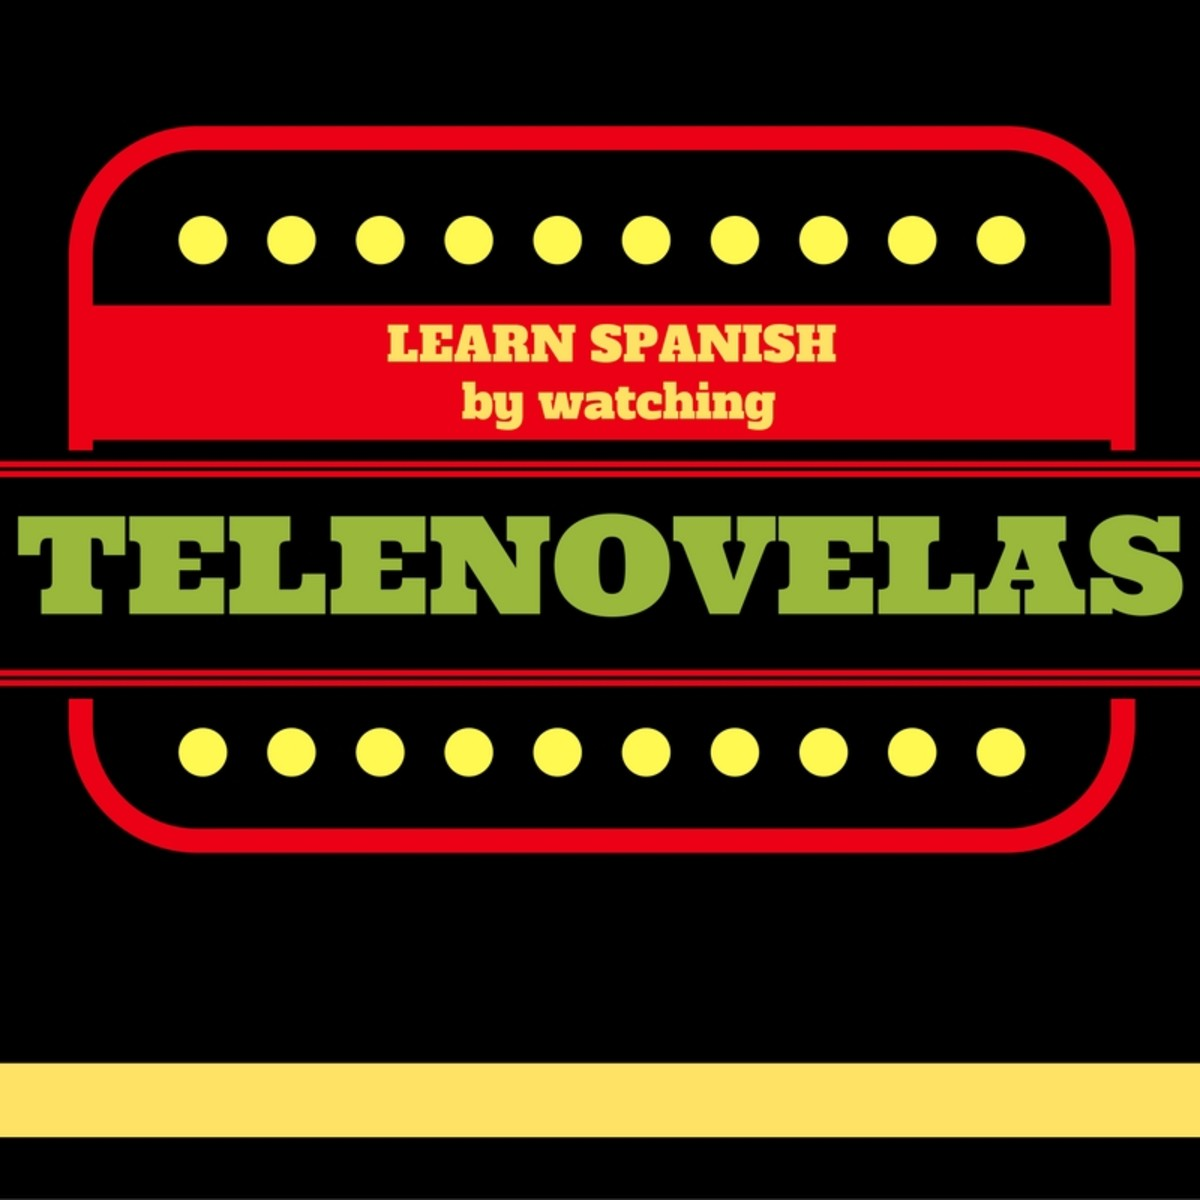 Novelas are a great way to learn another language!